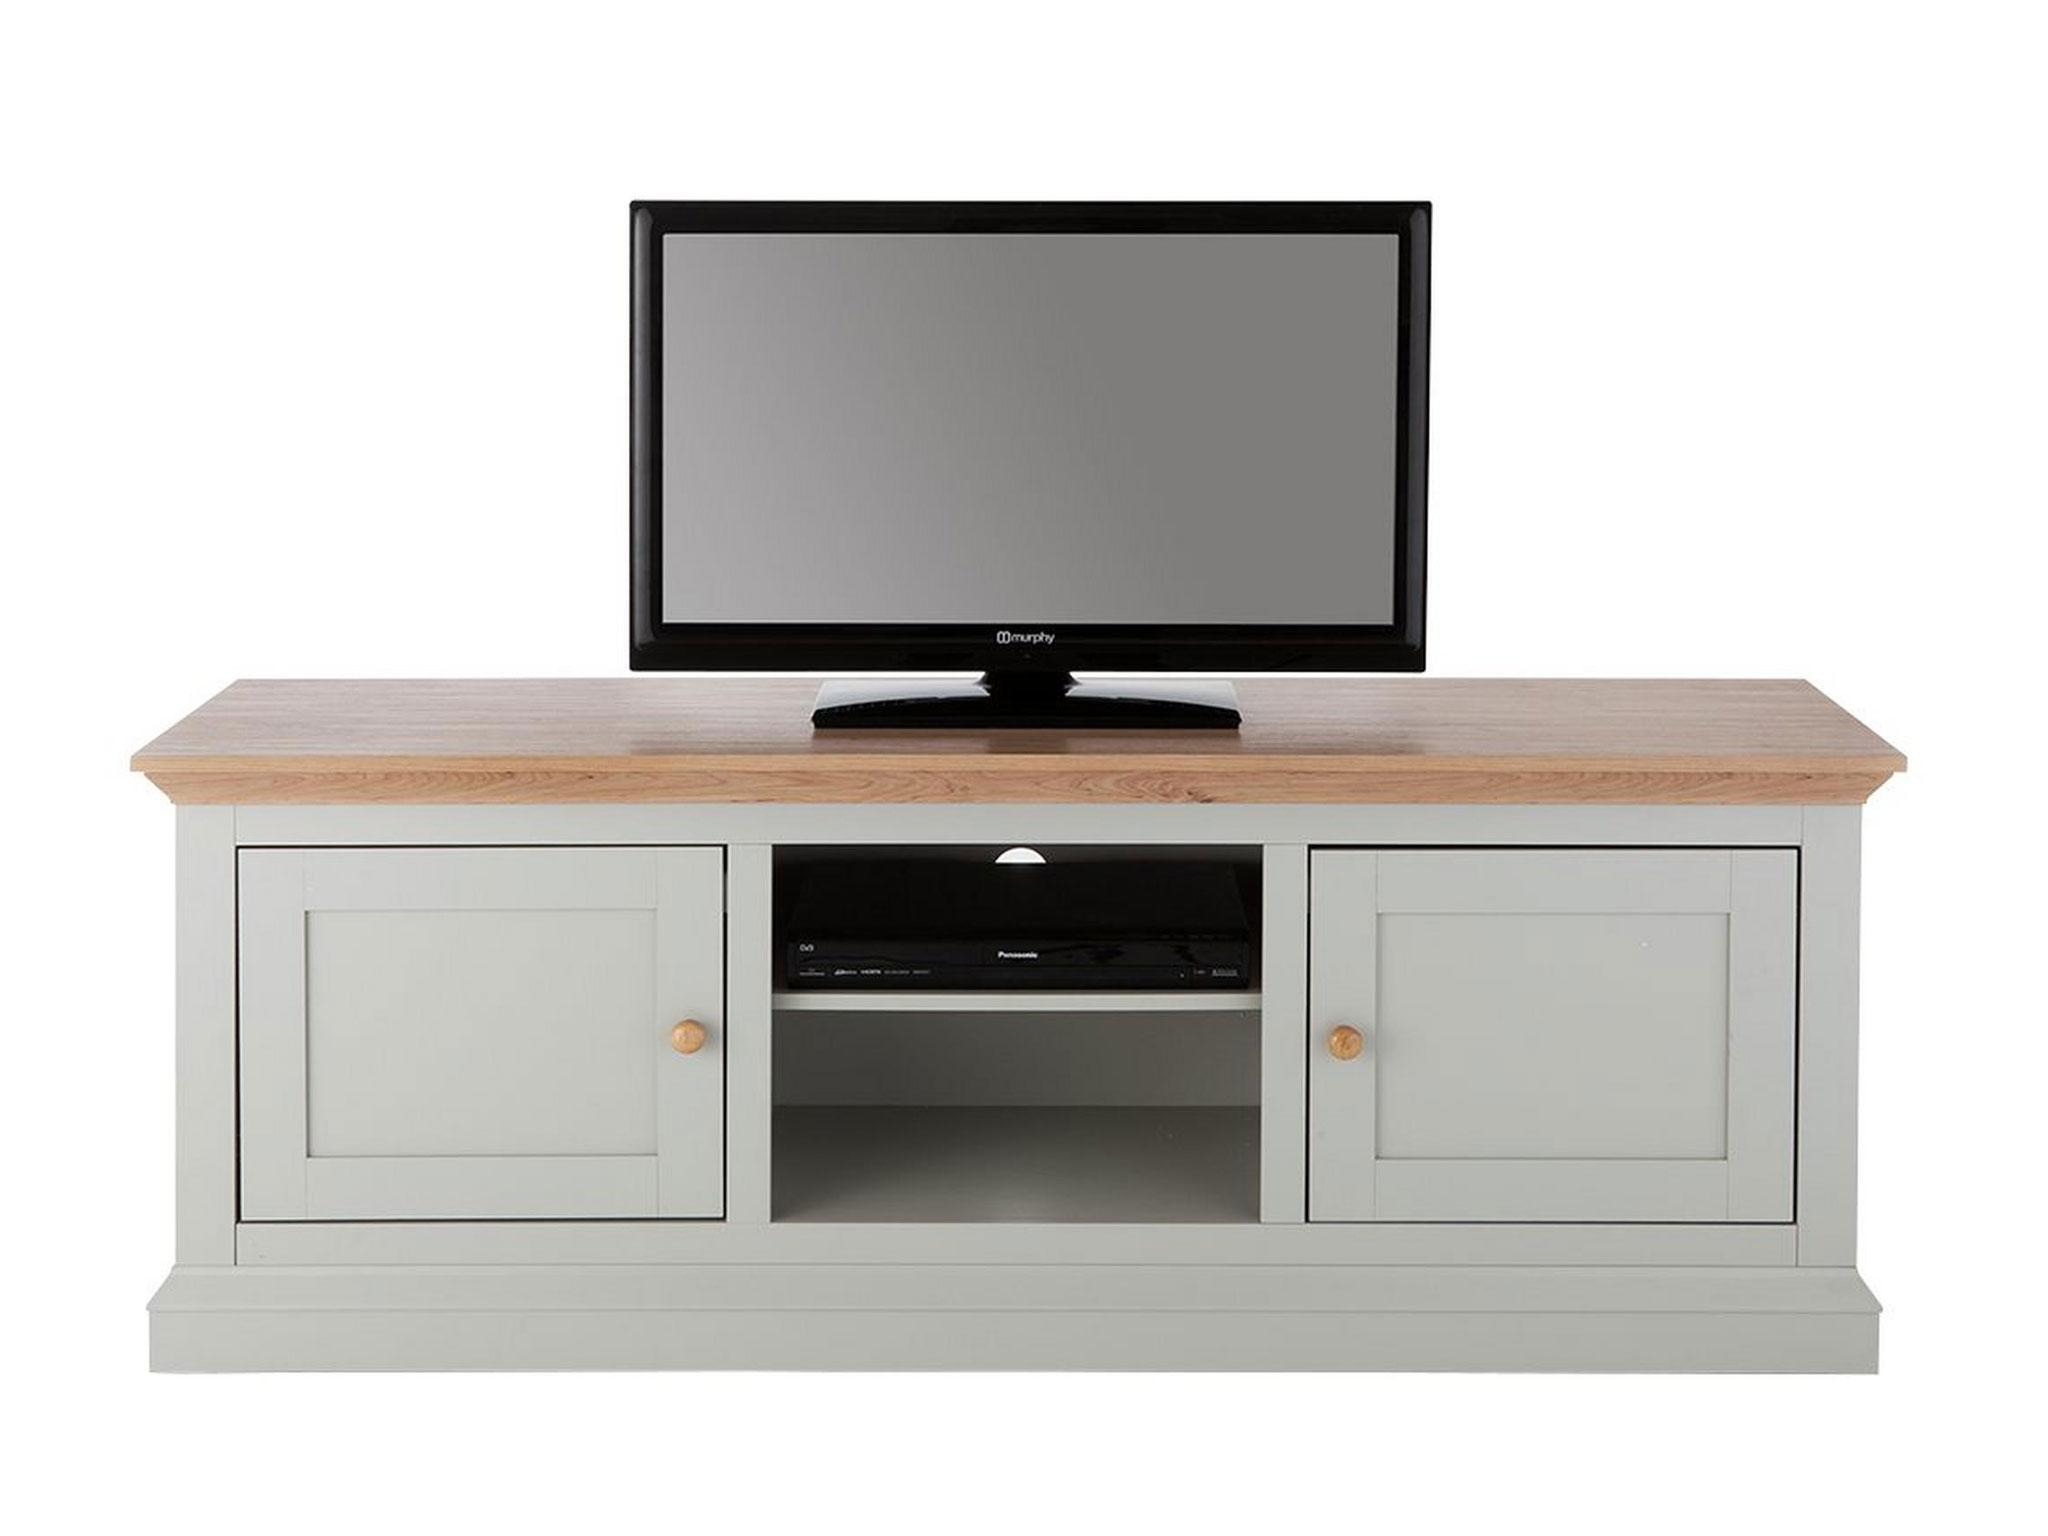 10 Best Tv Stands | The Independent With Regard To Century Sky 60 Inch Tv Stands (Gallery 21 of 30)